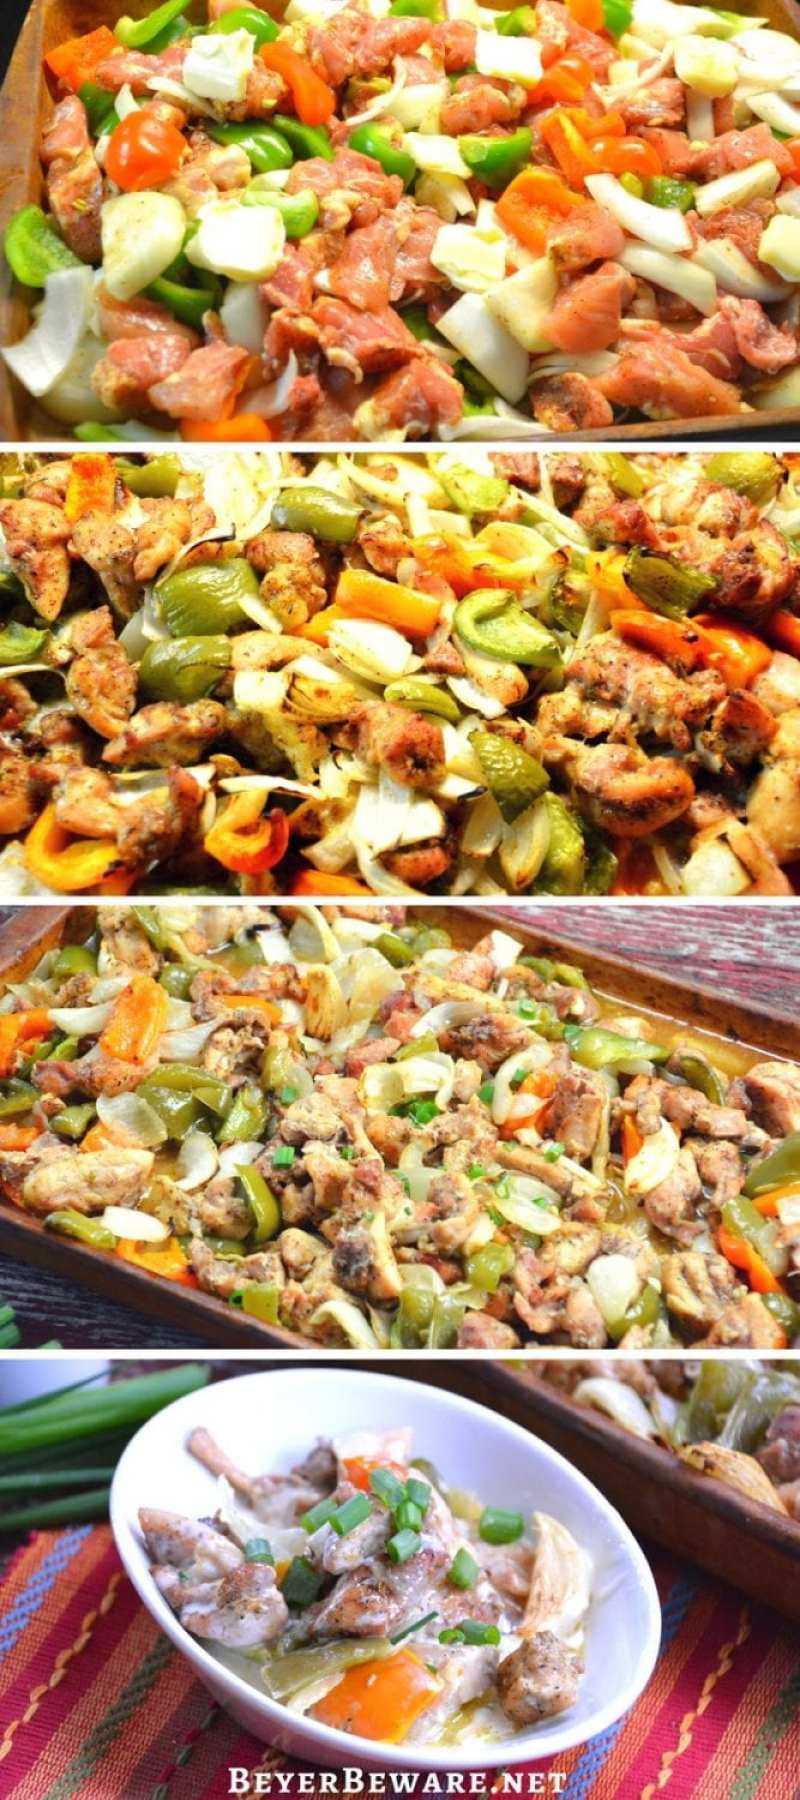 Low-Carb Queso Fajitas are a simple sheet pan baked fajita recipe that becomes cheesy chicken fajitas perfect for keto and low-carb diets.